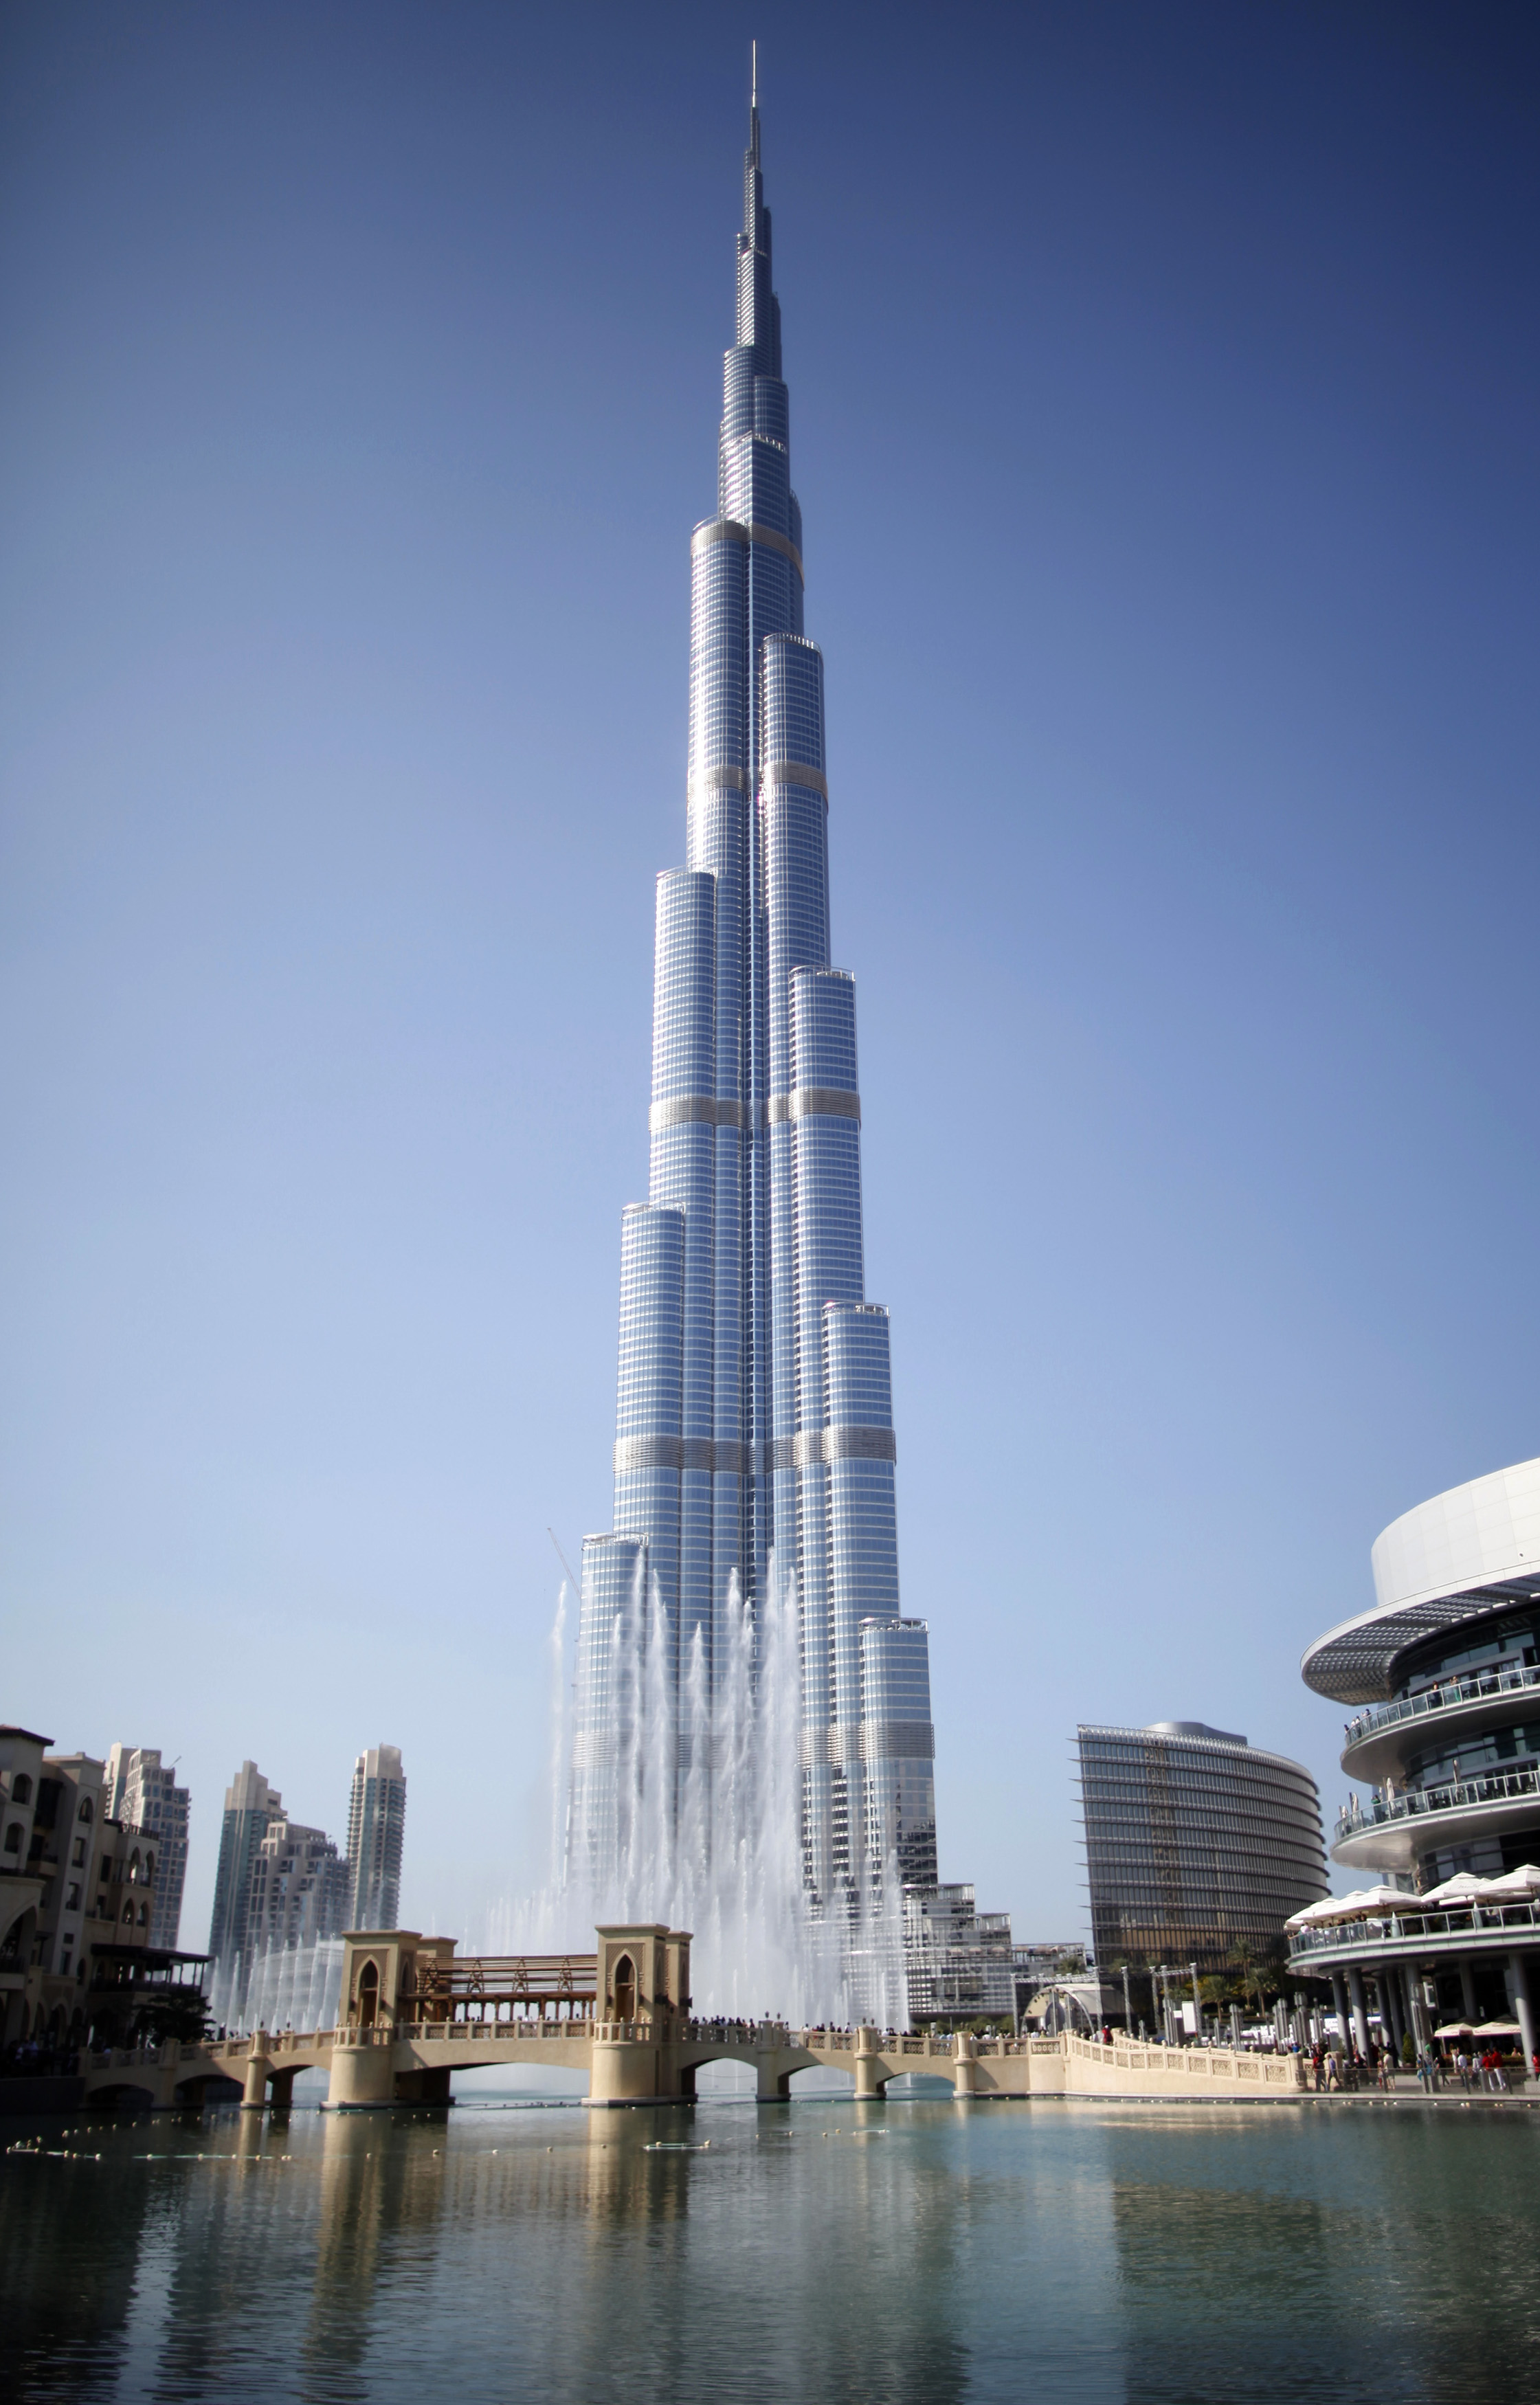 General view of Burj Khalifa, the world's tallest tower, in Dubai